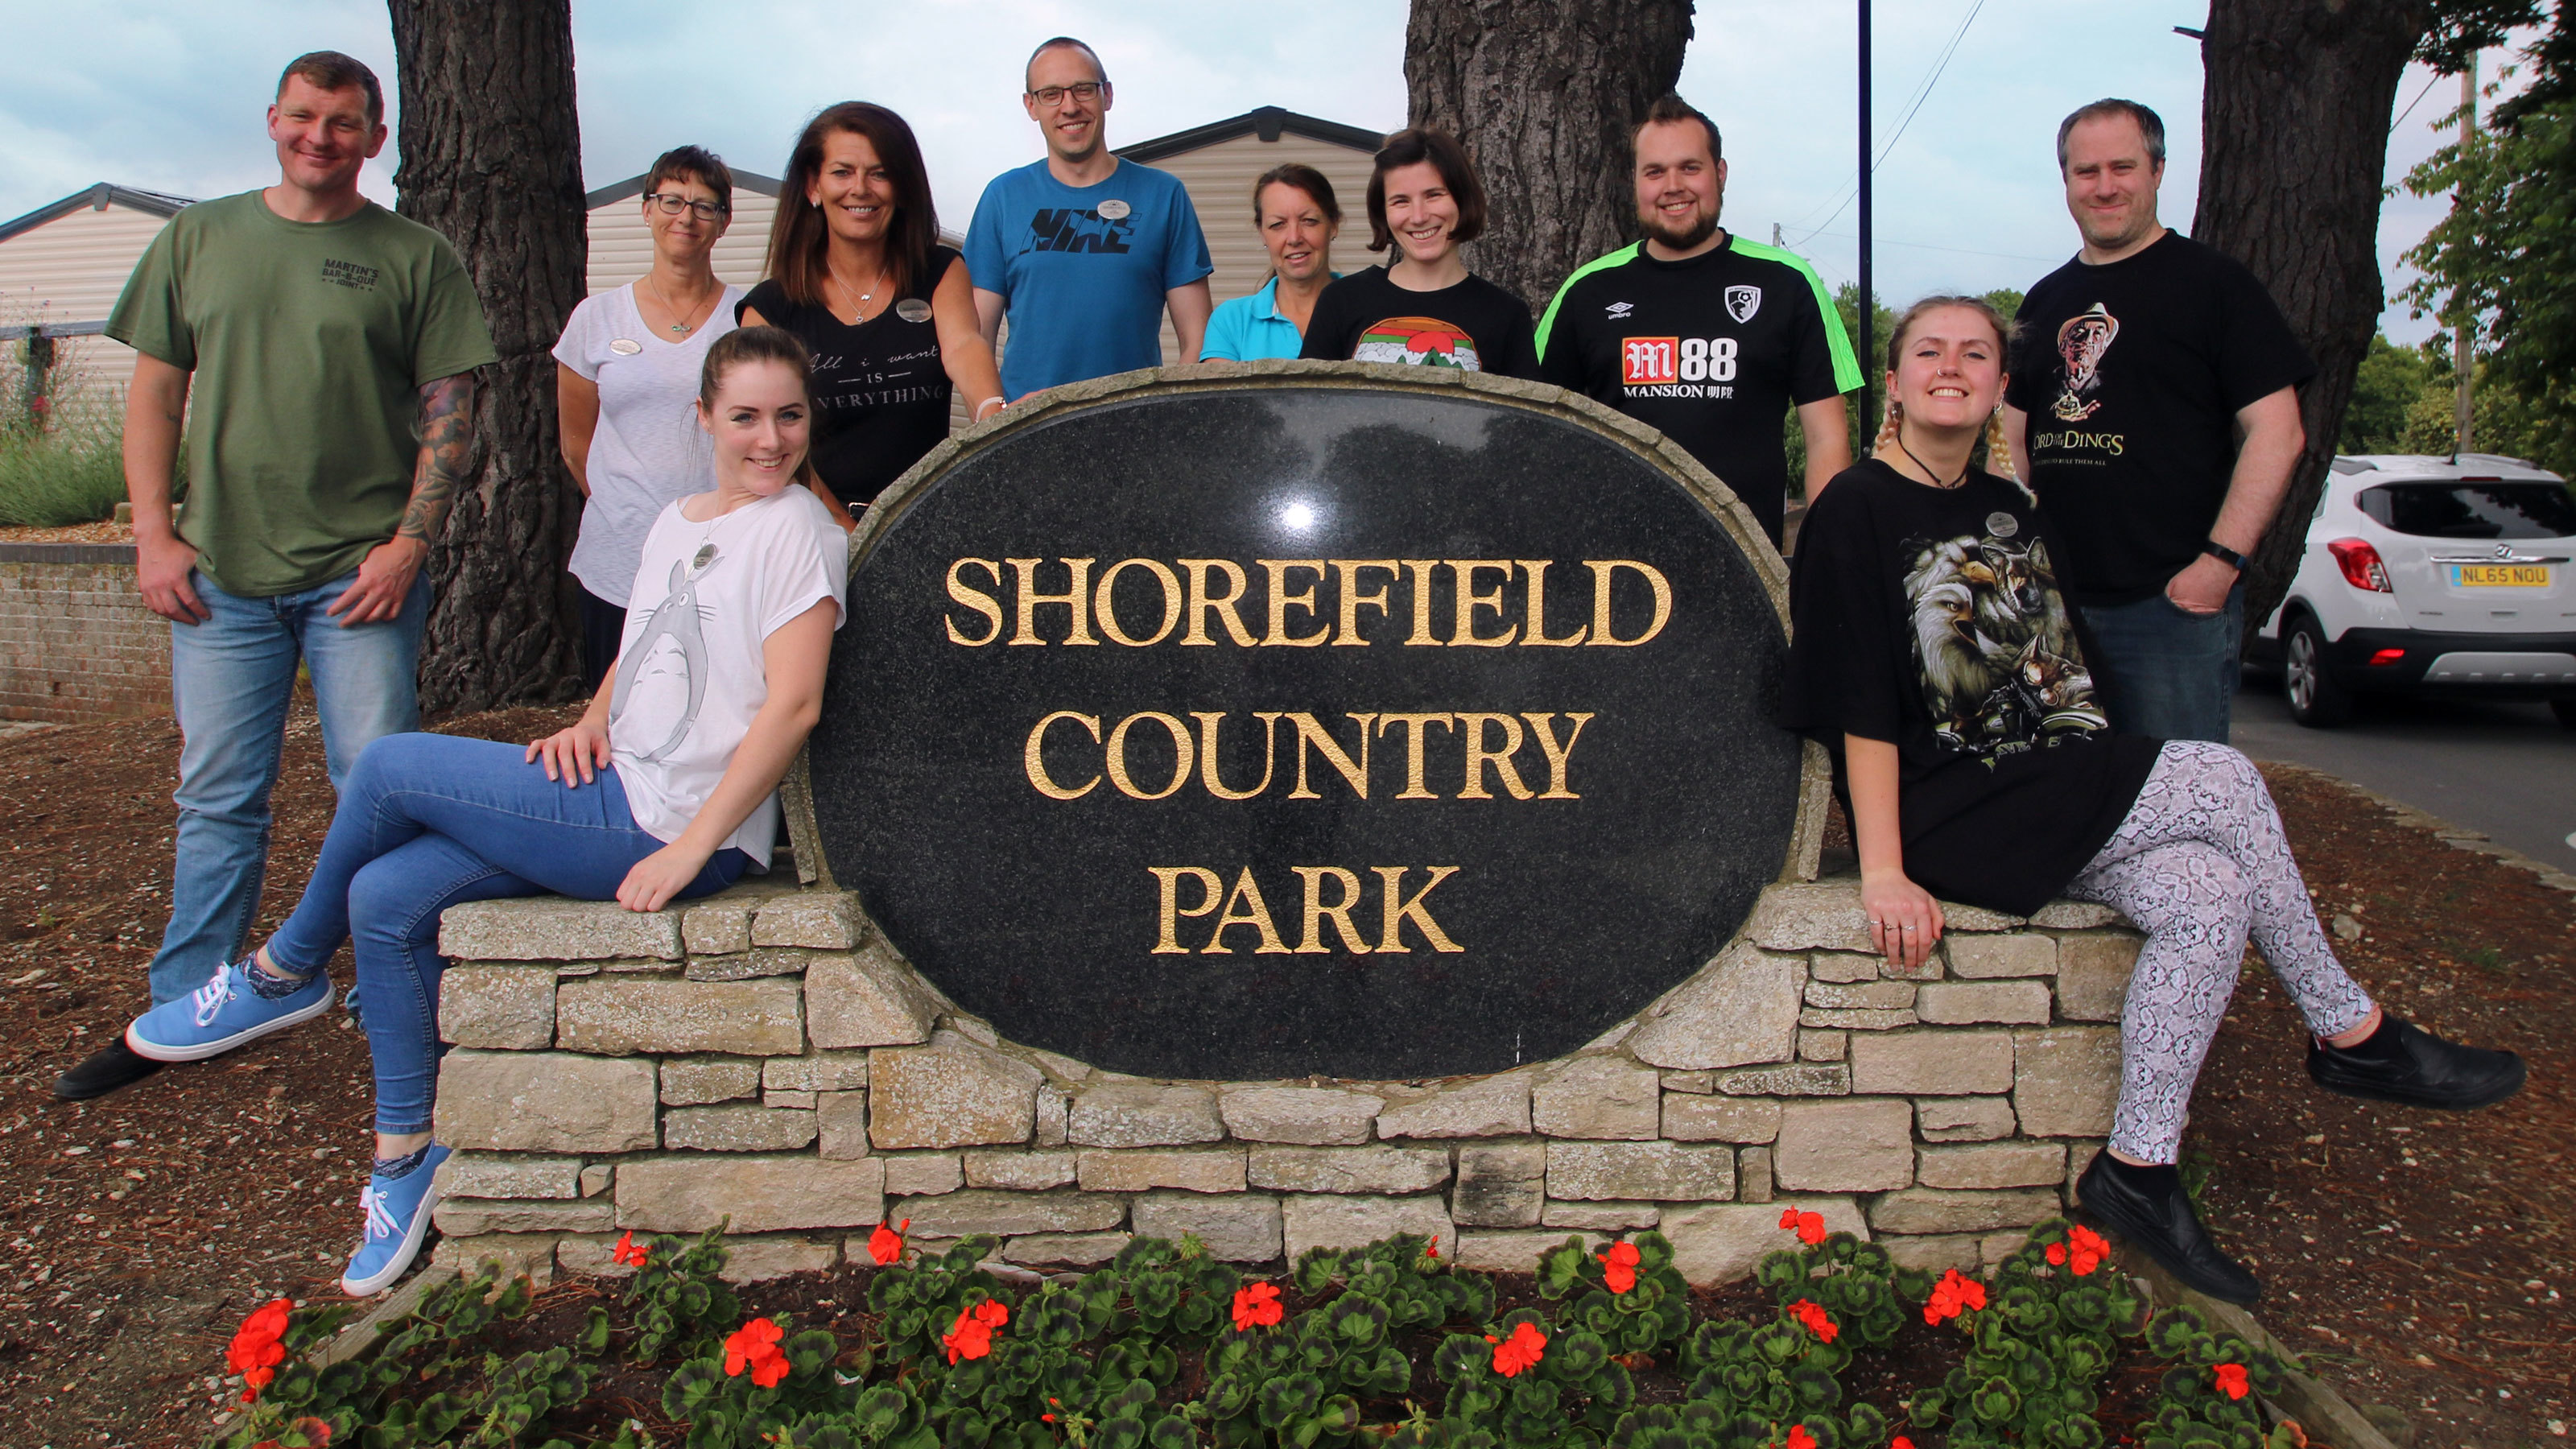 Shorefield-Holidays-charity-fundraising